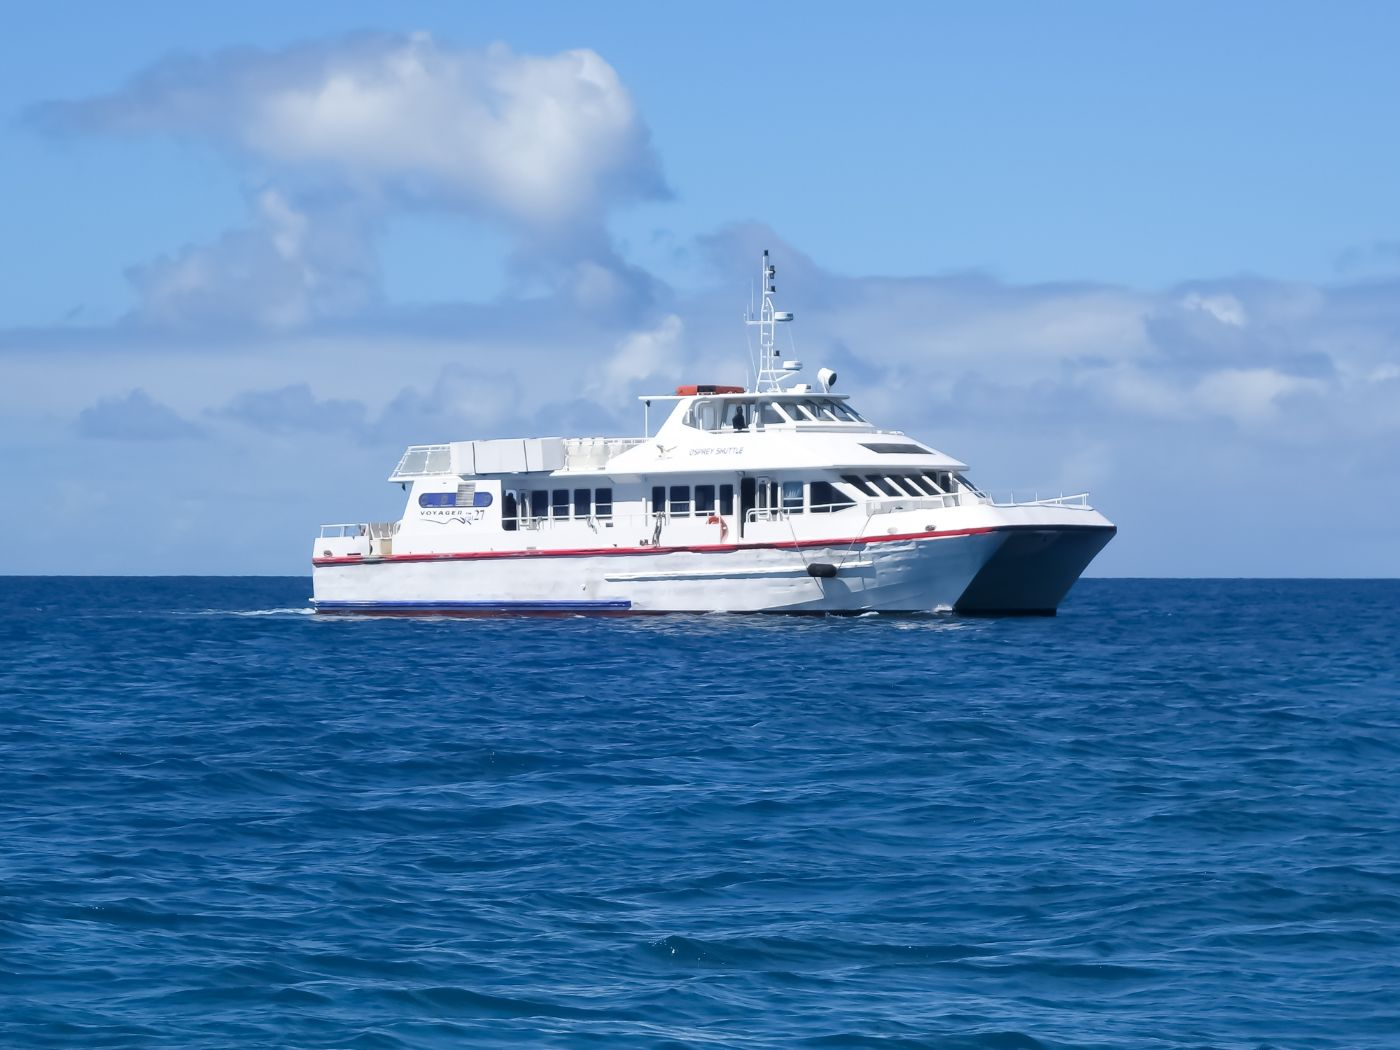 Travel to Carriacou on Osprey